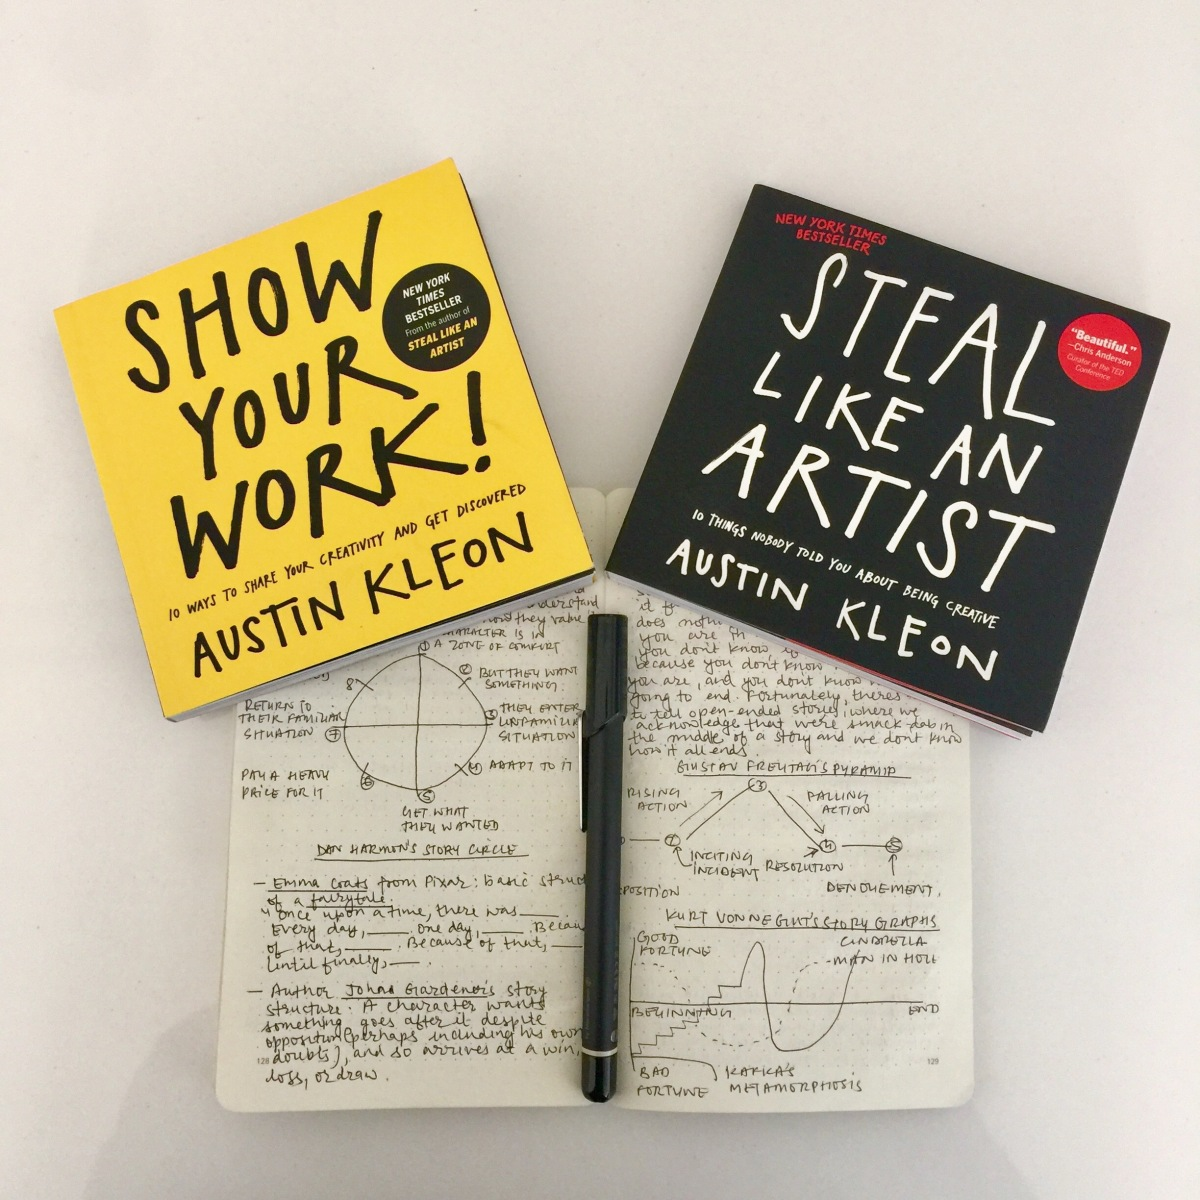 Eleven Lessons I (Re)learned From Austin Kleon's Books 'Steal Like an Artist' and 'Share Your Work'